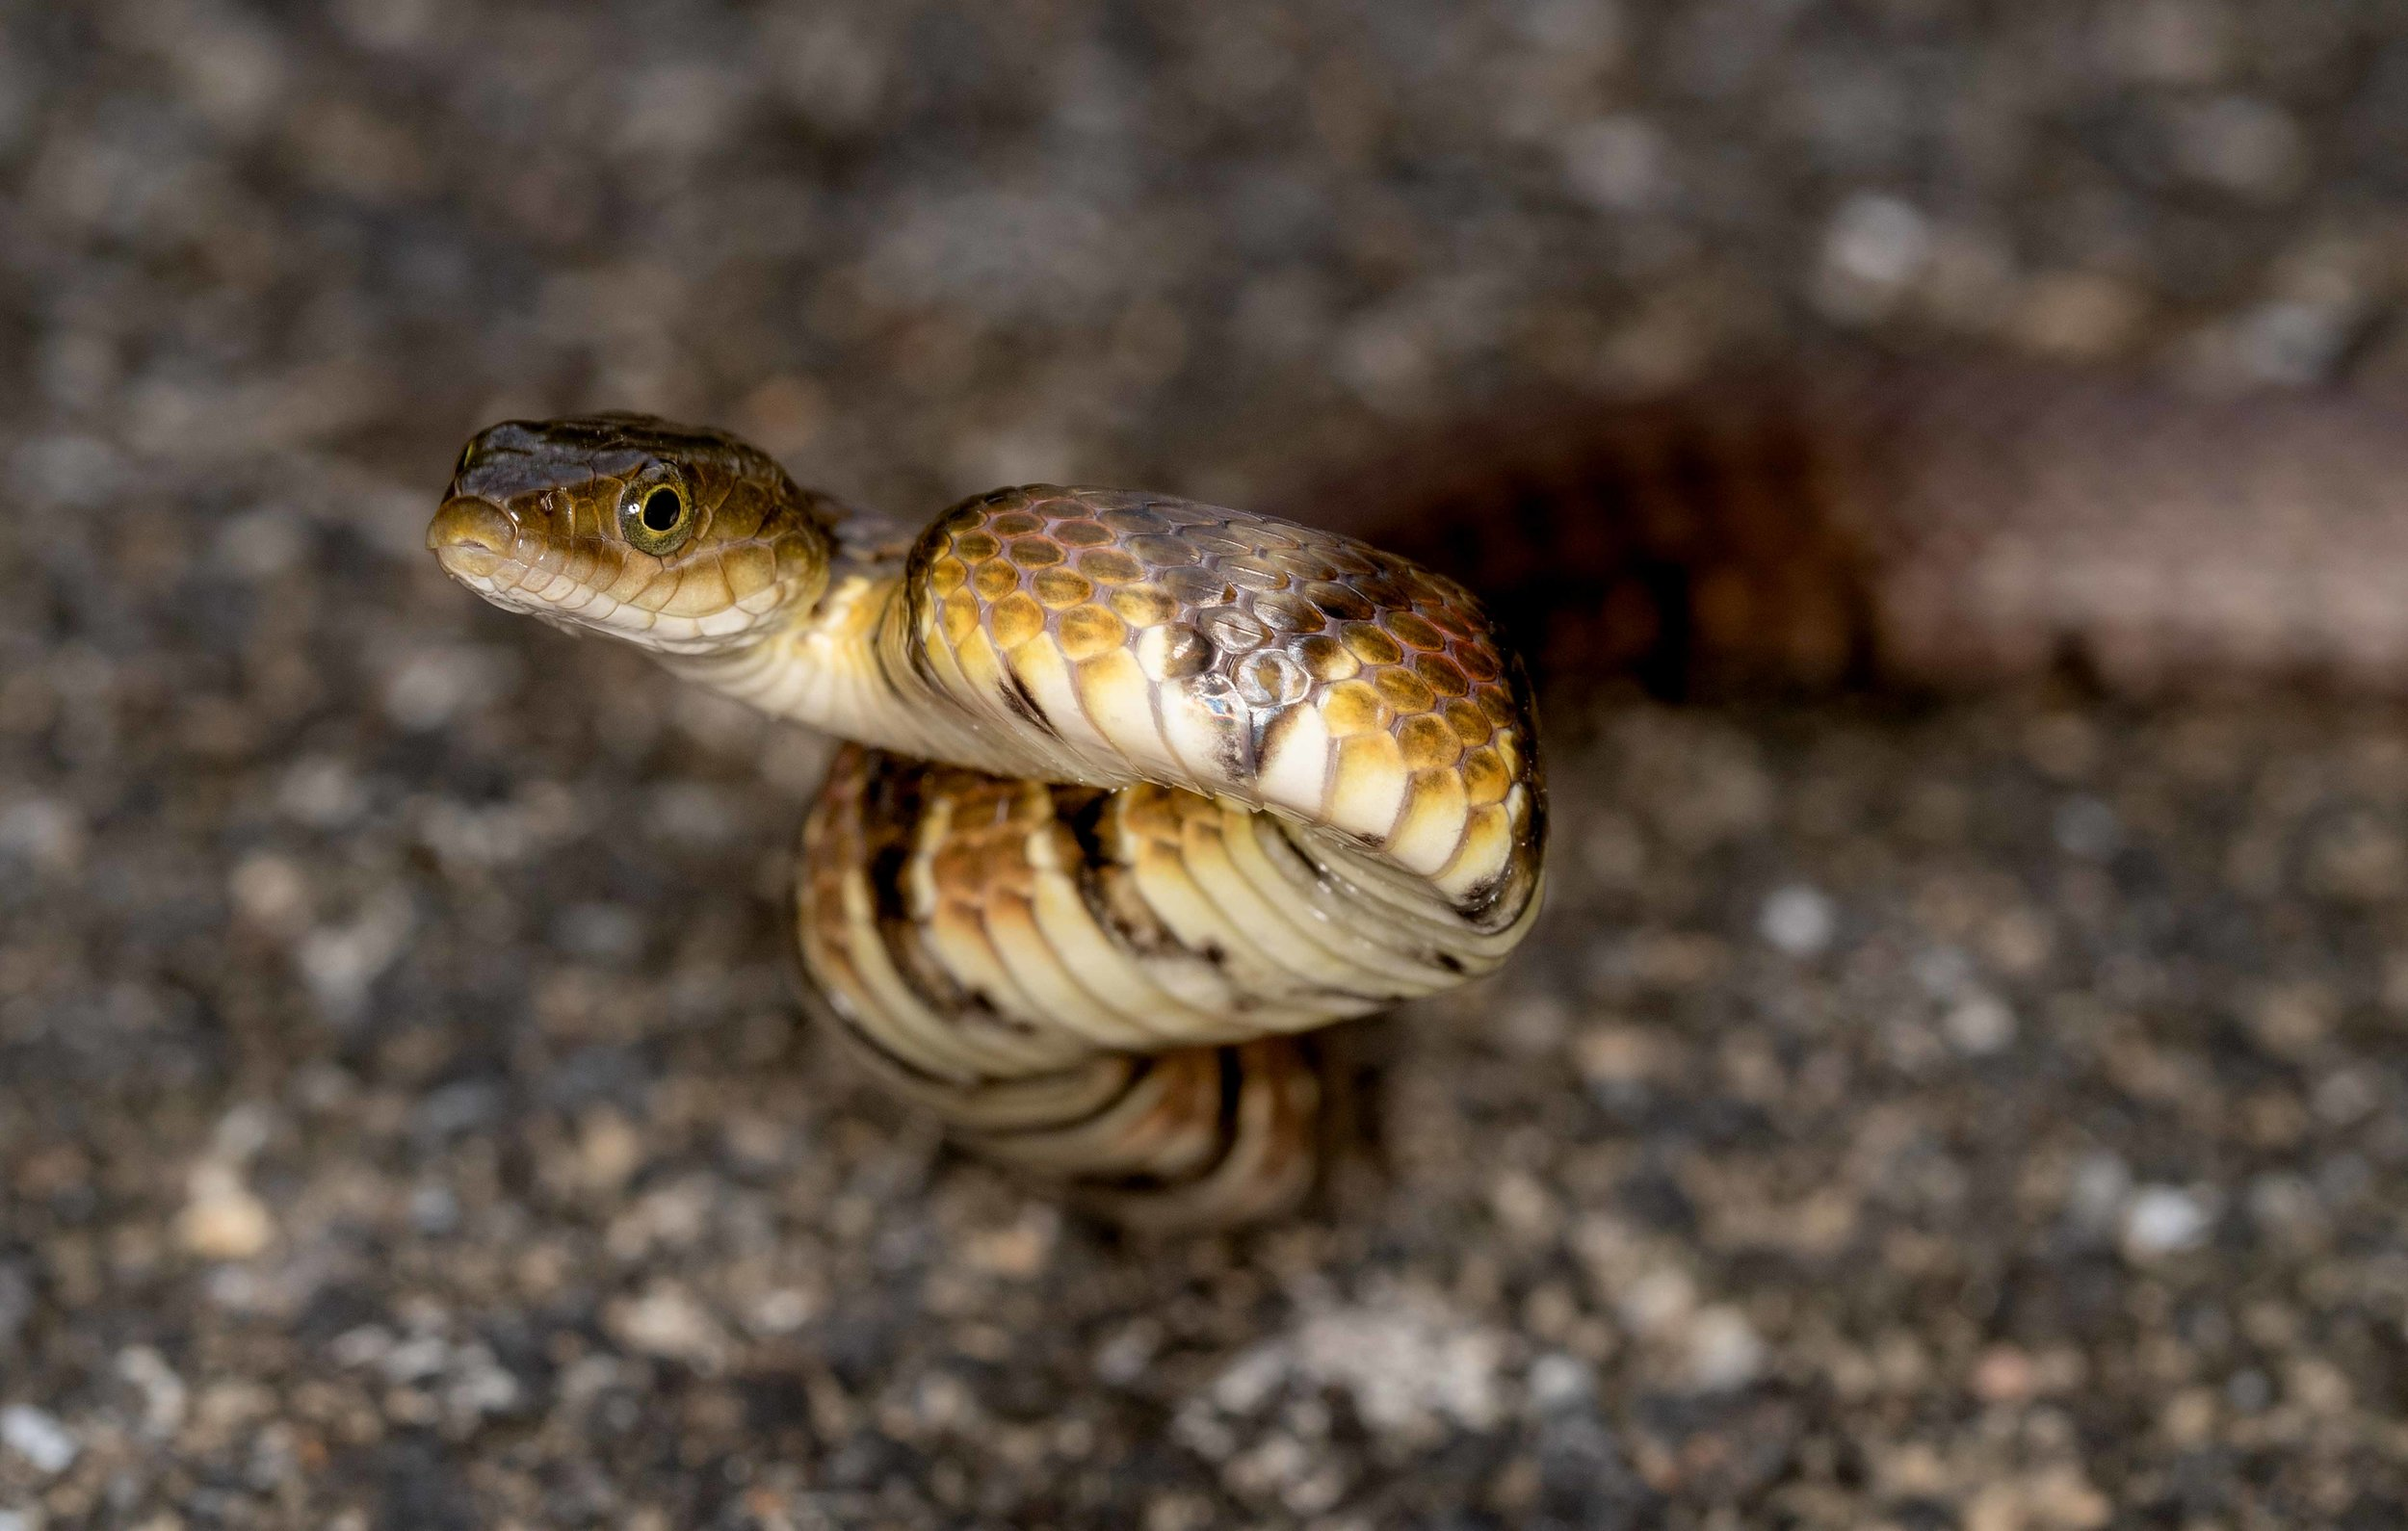 Copy of Mountain Water Snake